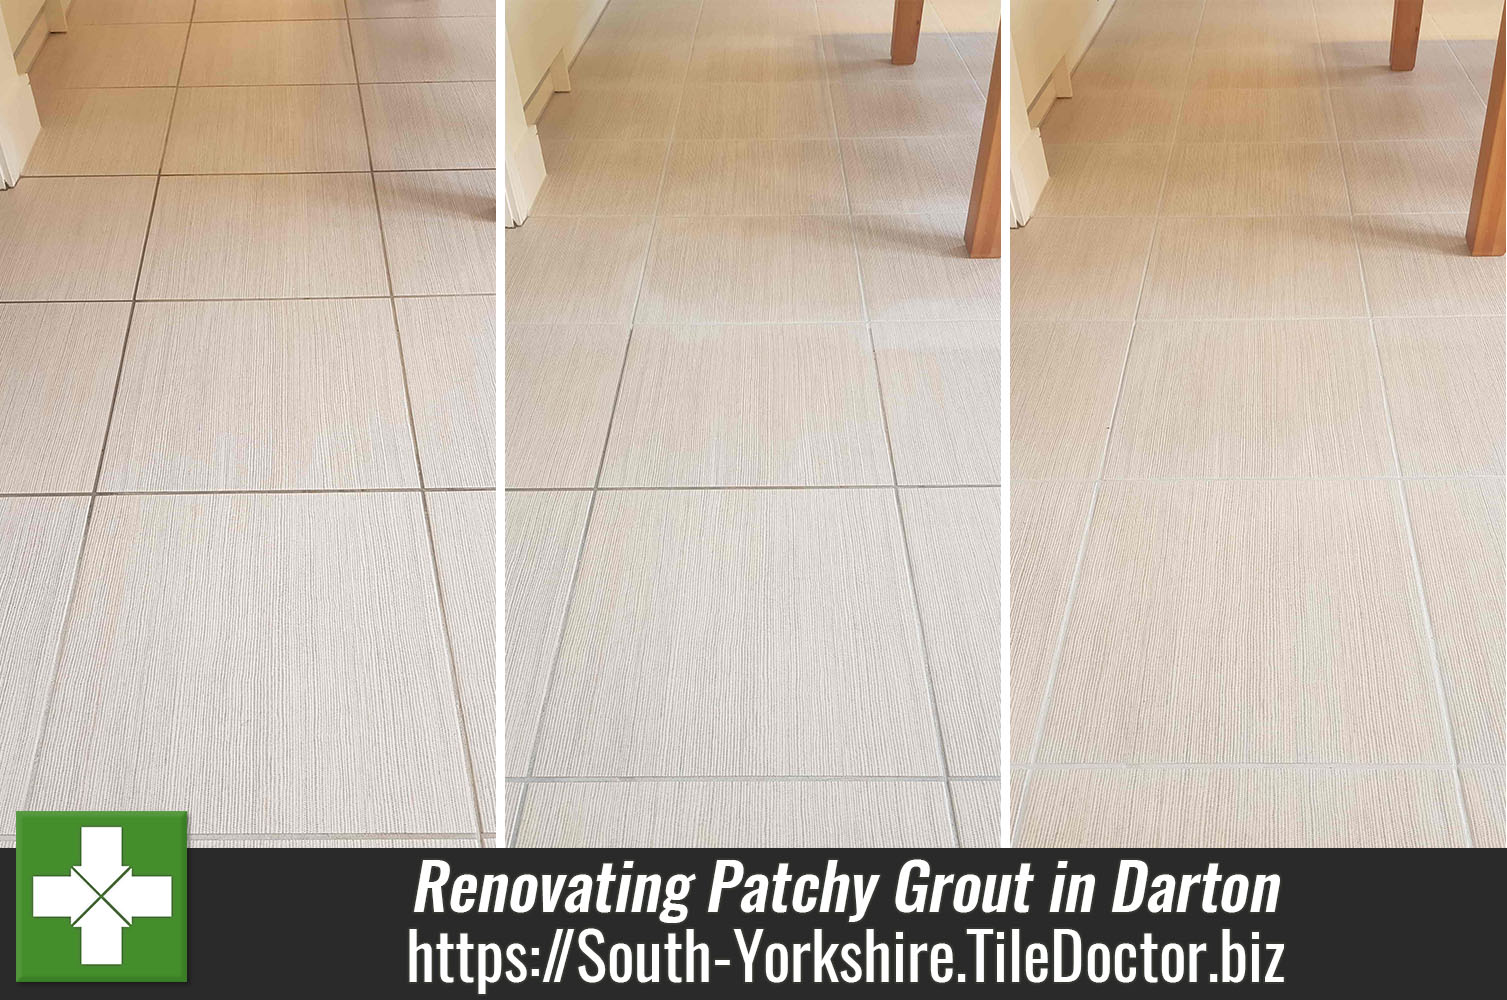 Patchy Grout on Porcelain Floor Restored in Darton New Build